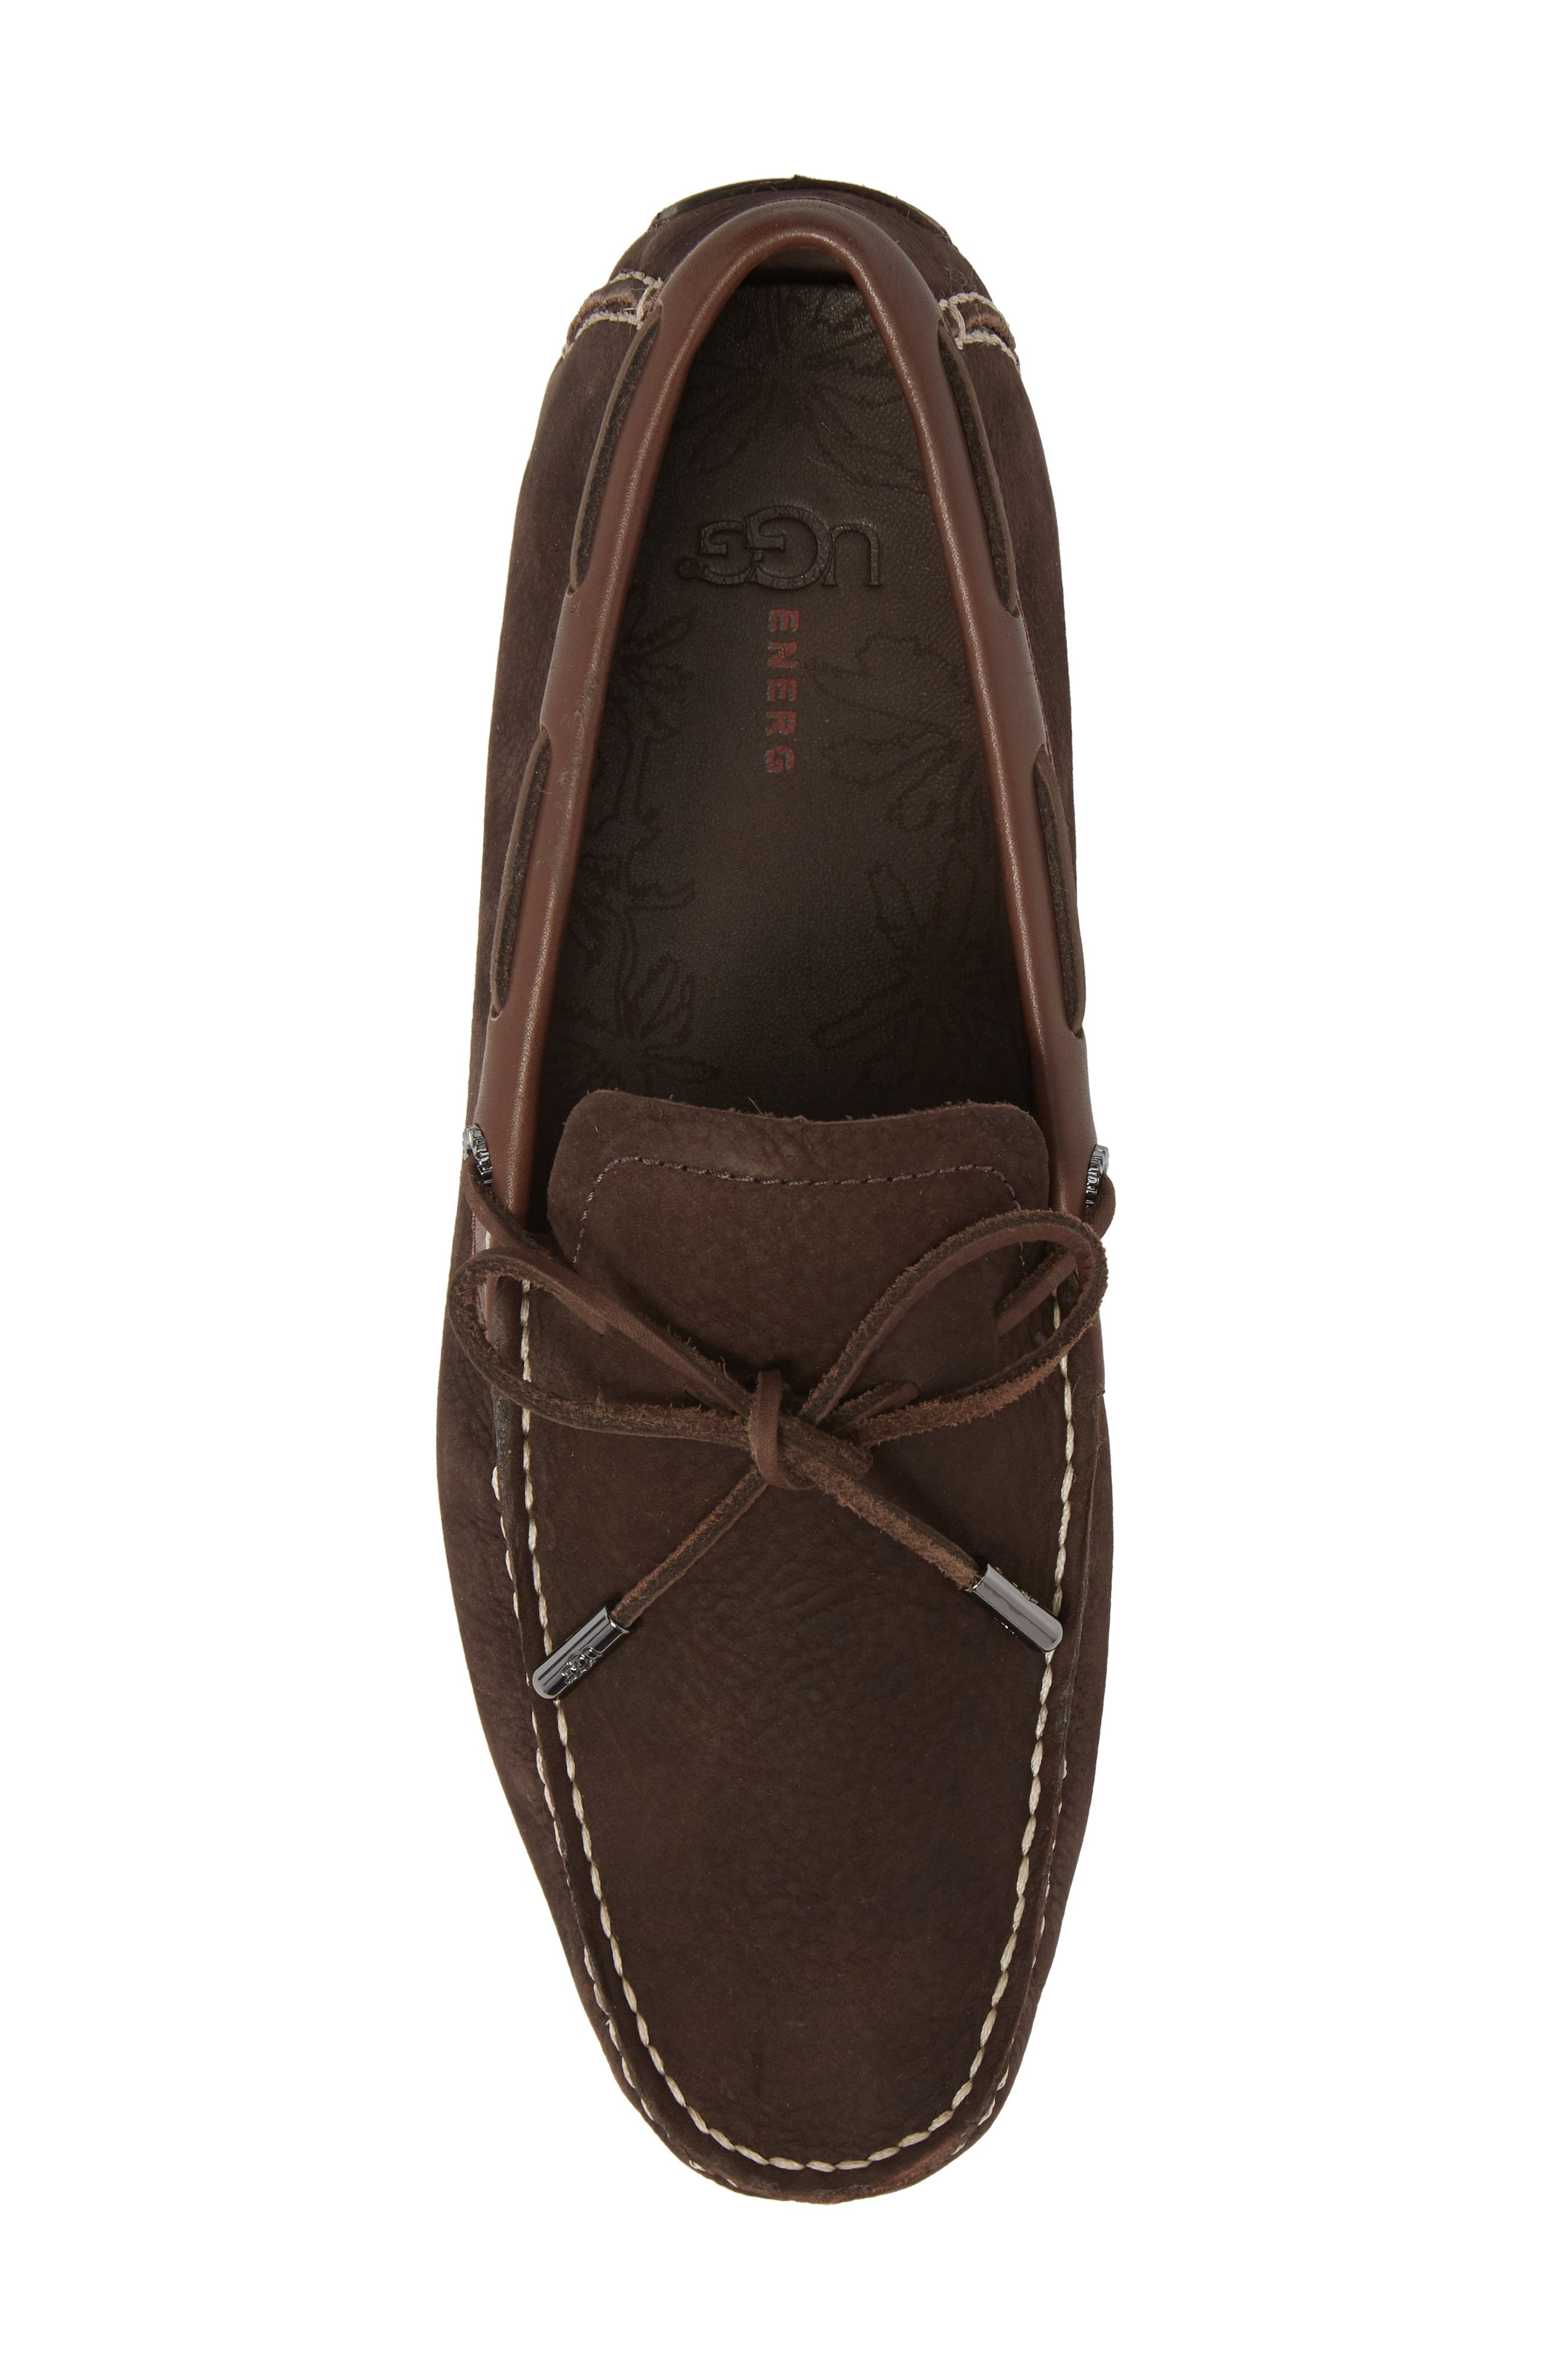 Bel Air Driving Moccasin,                             Alternate thumbnail 5, color,                             STOUT LEATHER